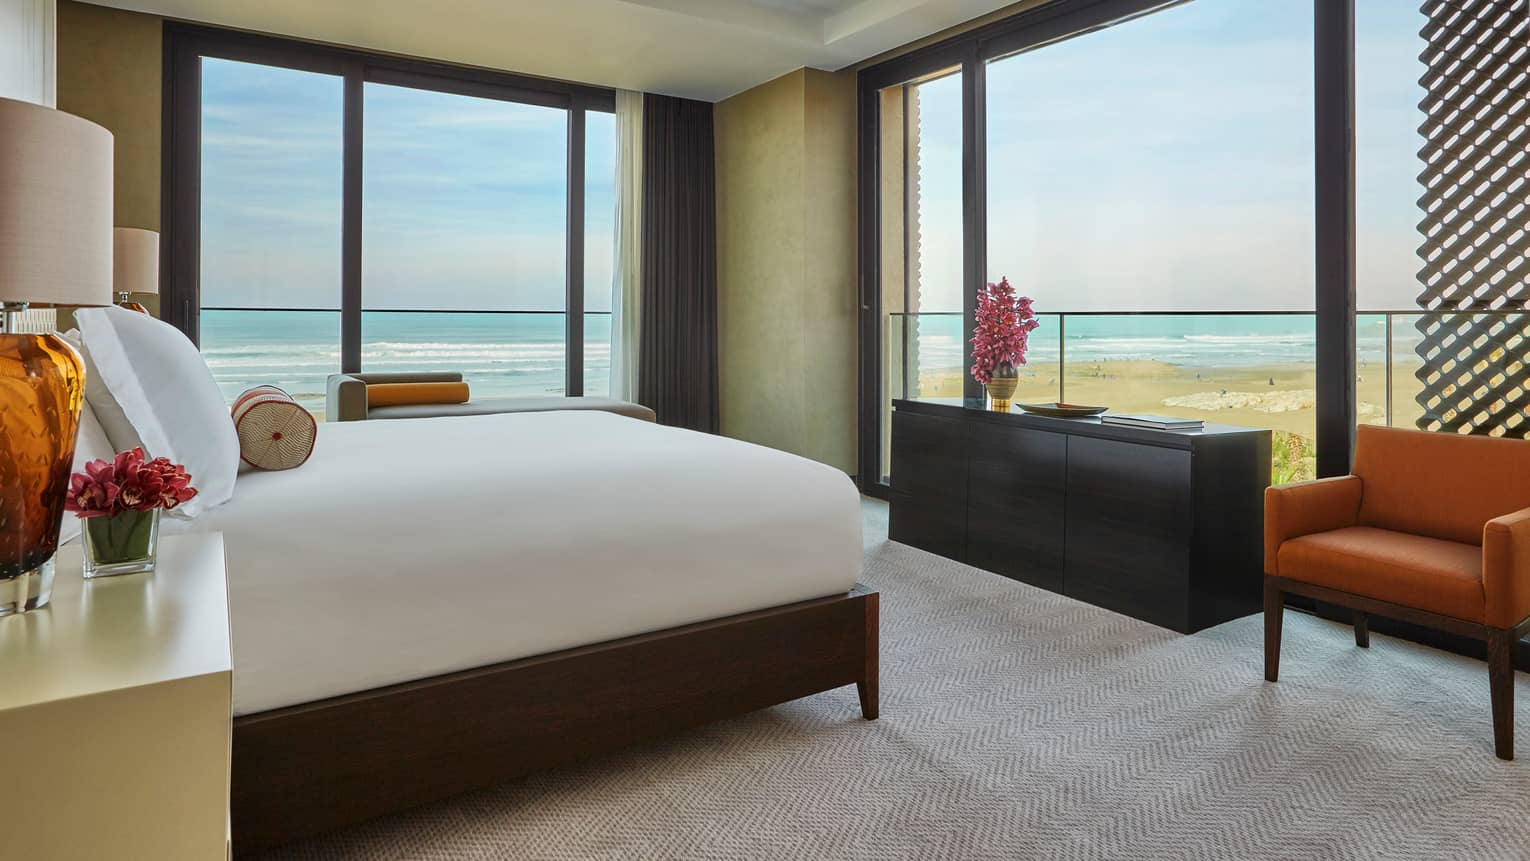 Imperial Suite Ocean room with bed, corner windows with Atlantic Ocean views